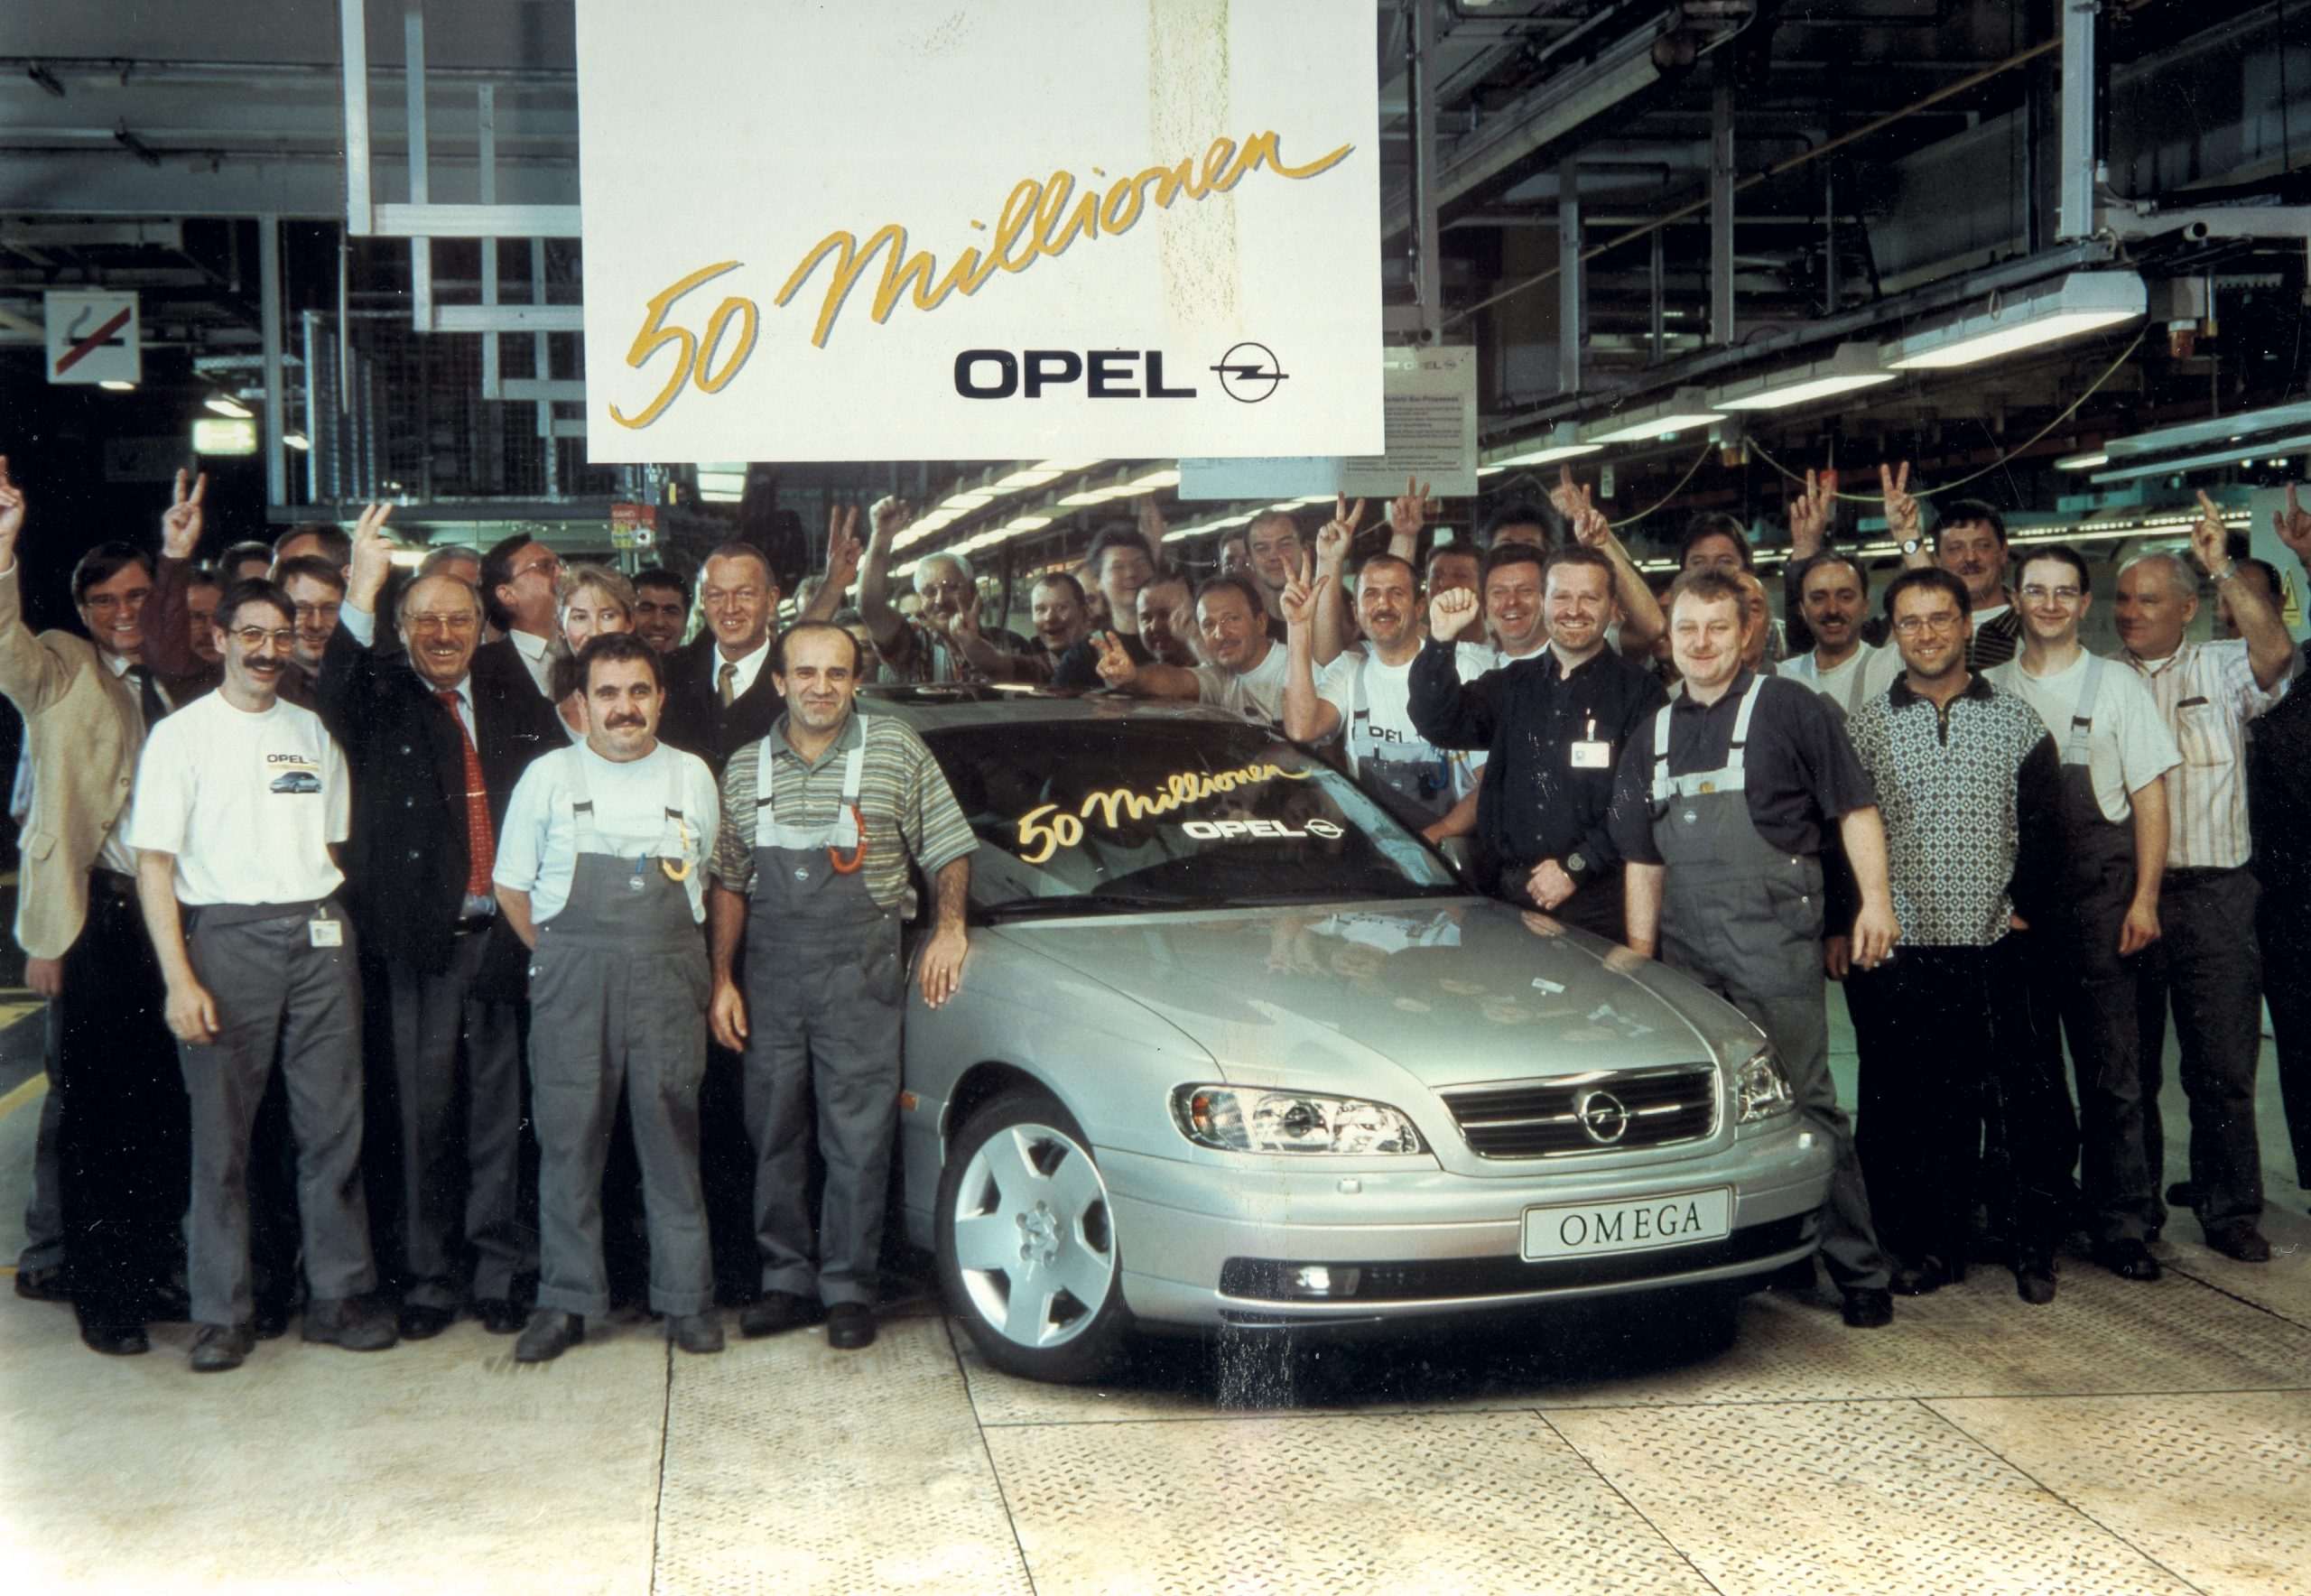 Campionato Italiano Rally - image 1999-50-milioni-Opel-scaled on http://auto.motori.net